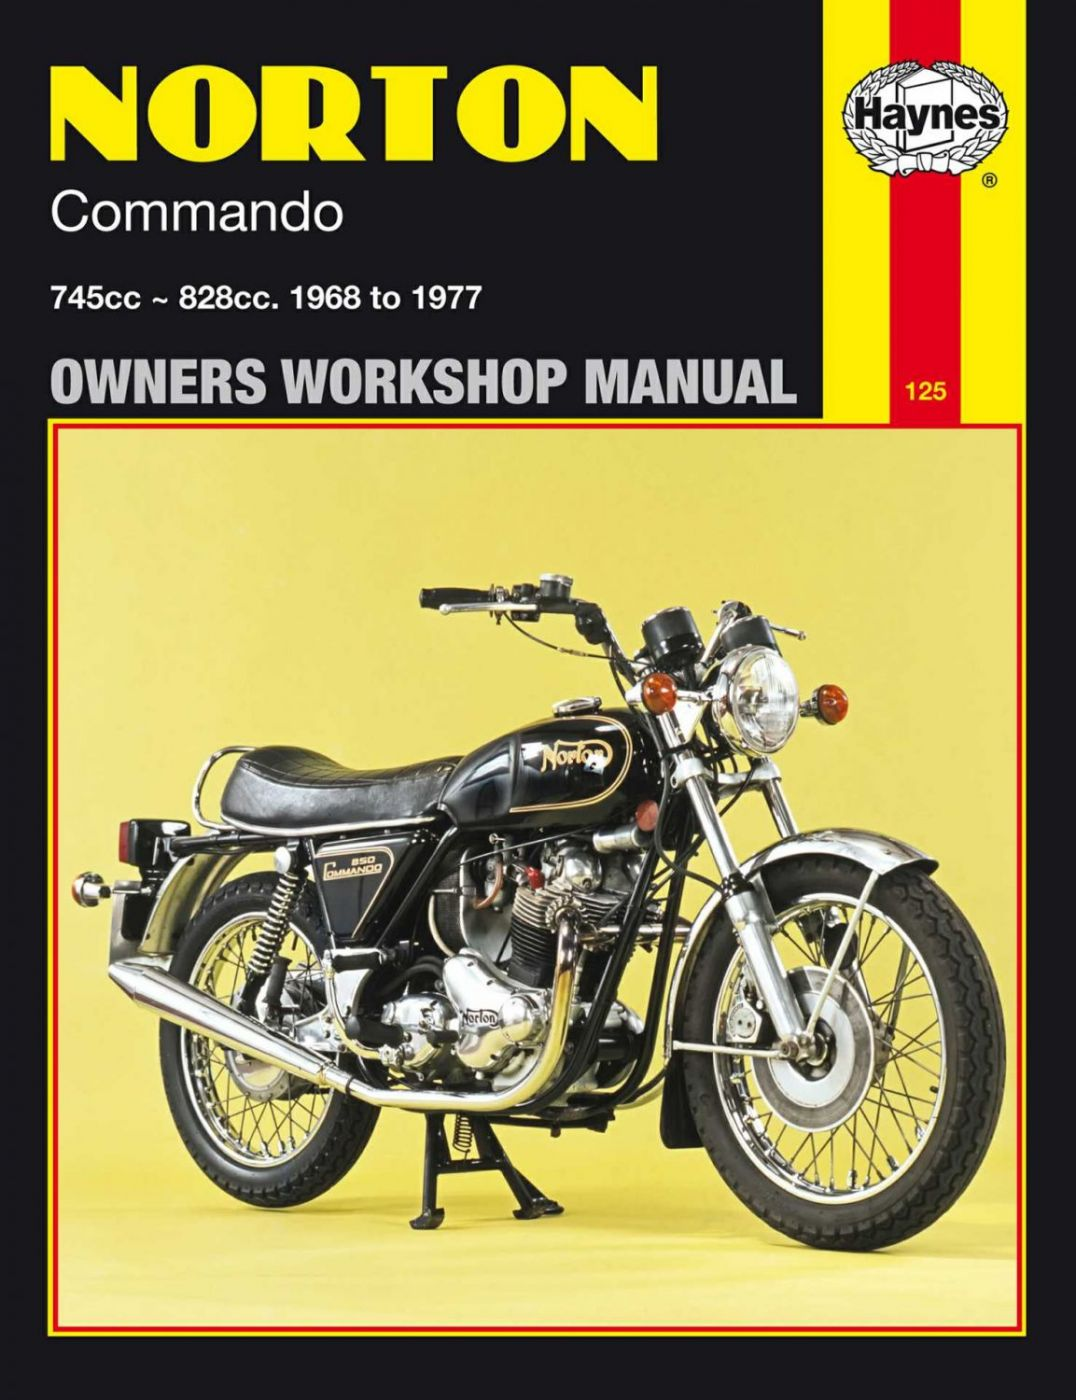 Haynes Manuals - 680125Y image